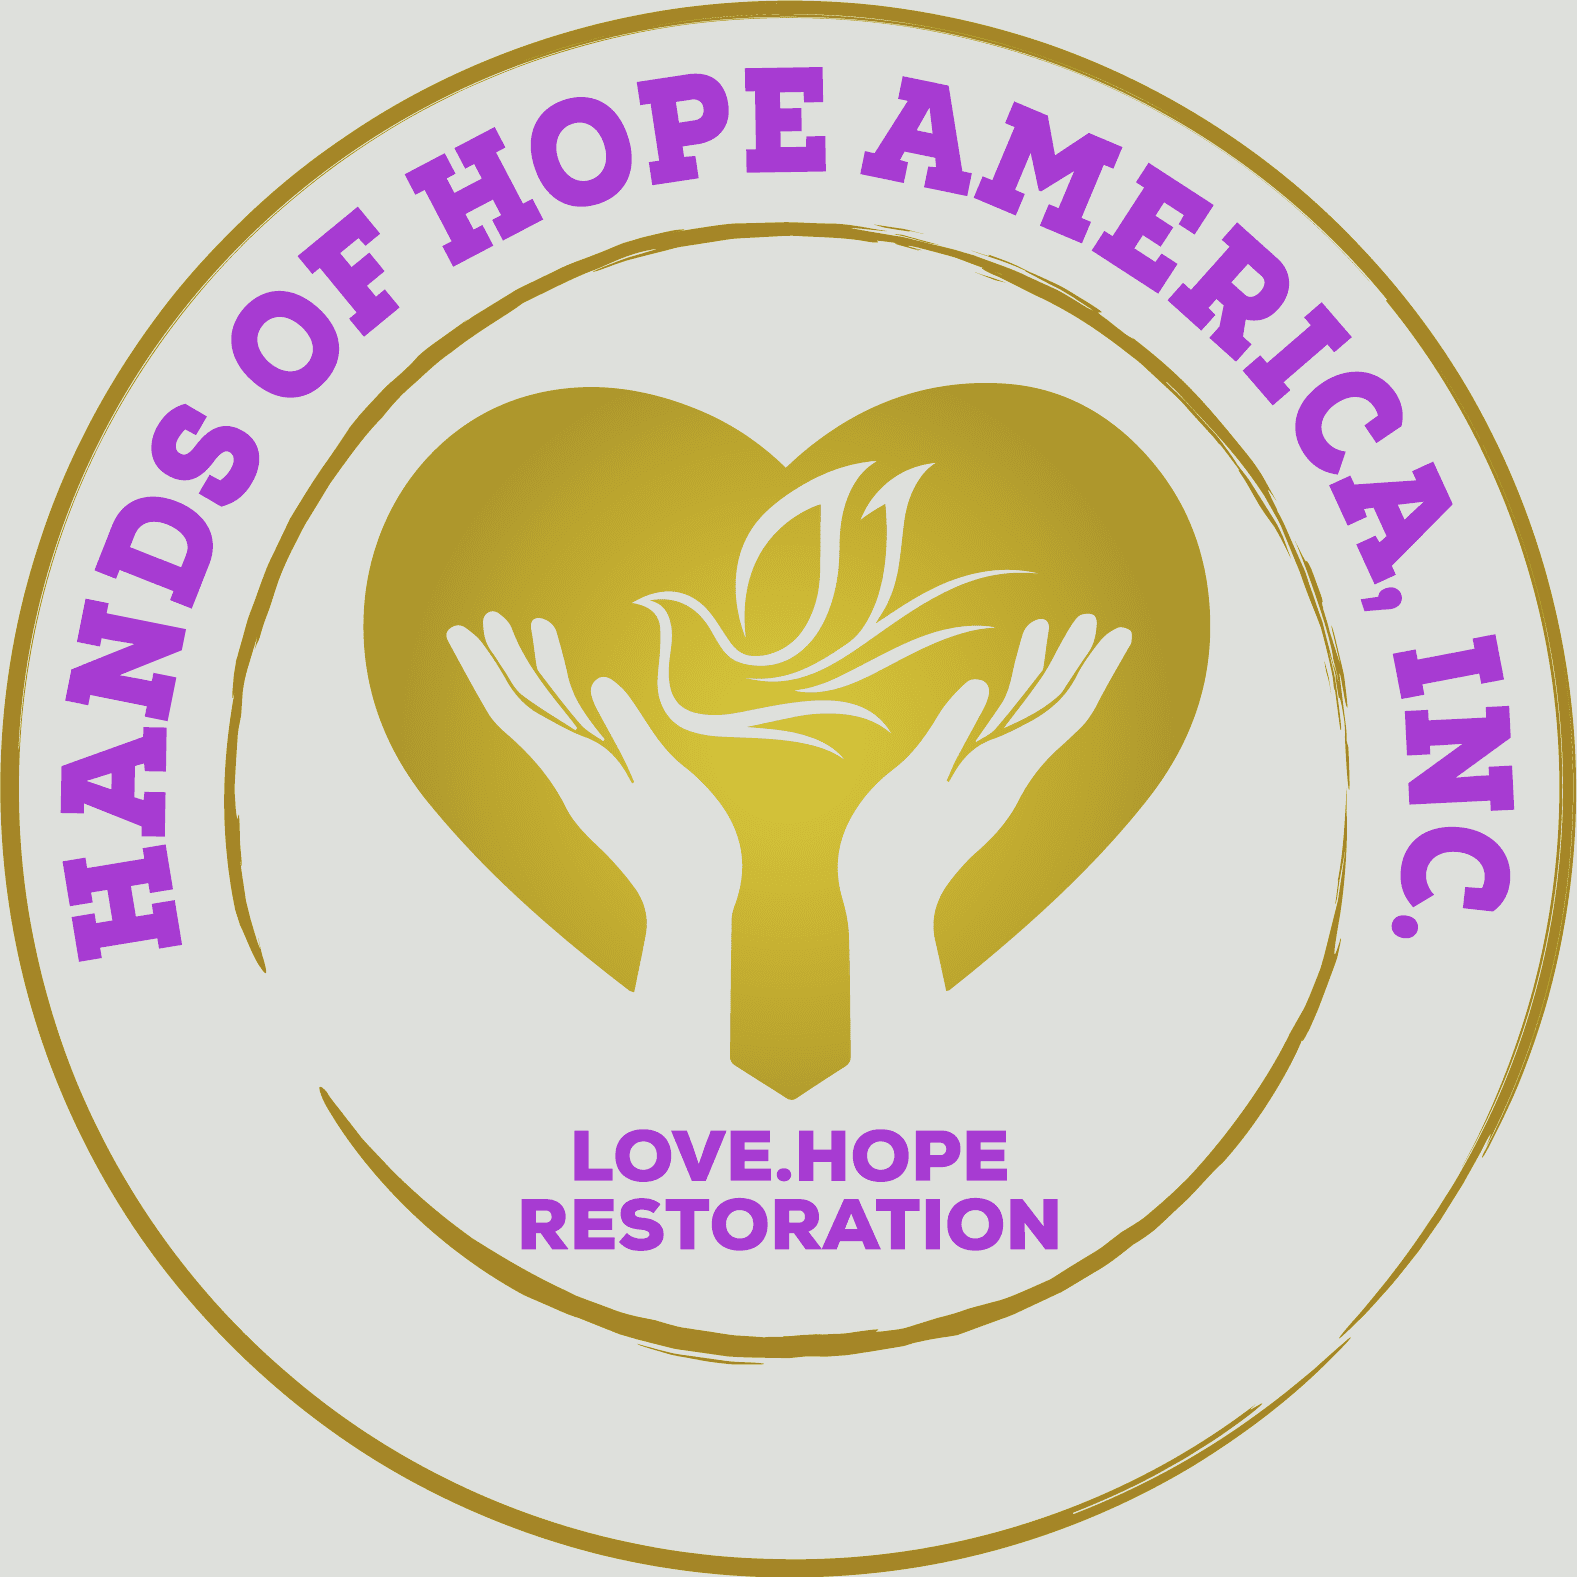 Hands of Hope America, Inc.